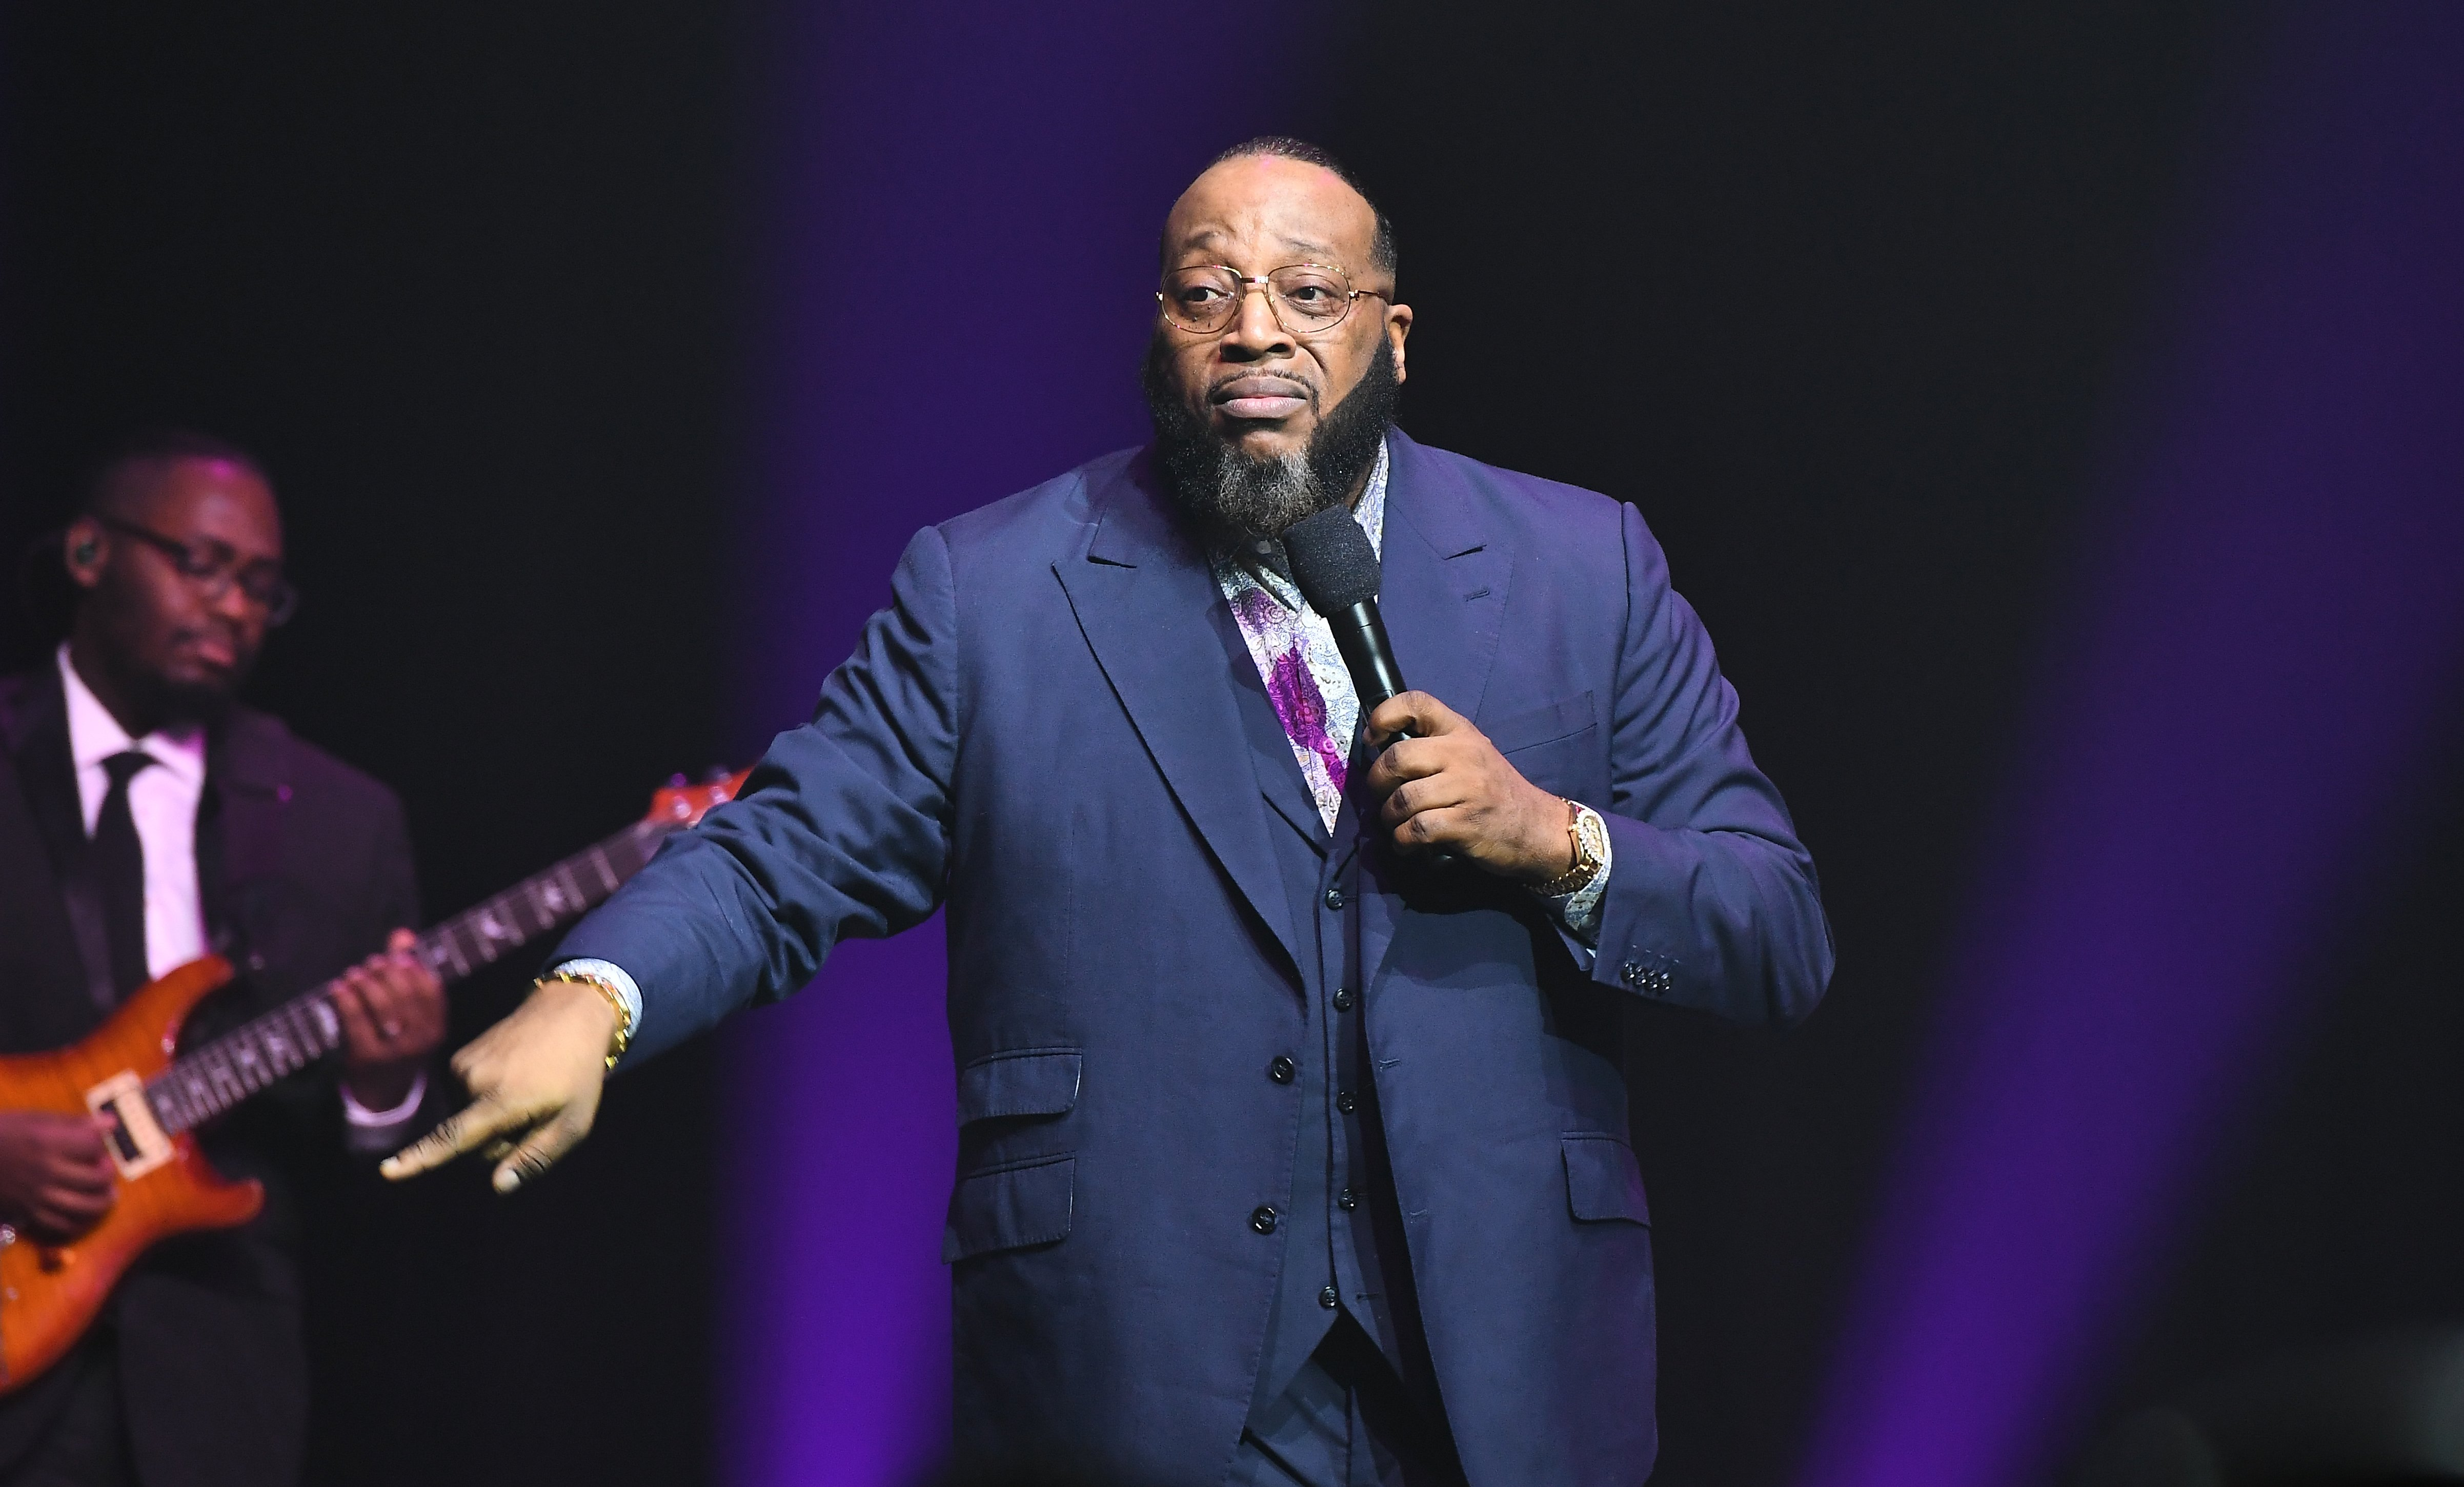 Marvin Sapp performs onstage during the 2018 Urban One Honors at The Anthem on December 9, 2018 in Washington, DC. | Source: Getty Images